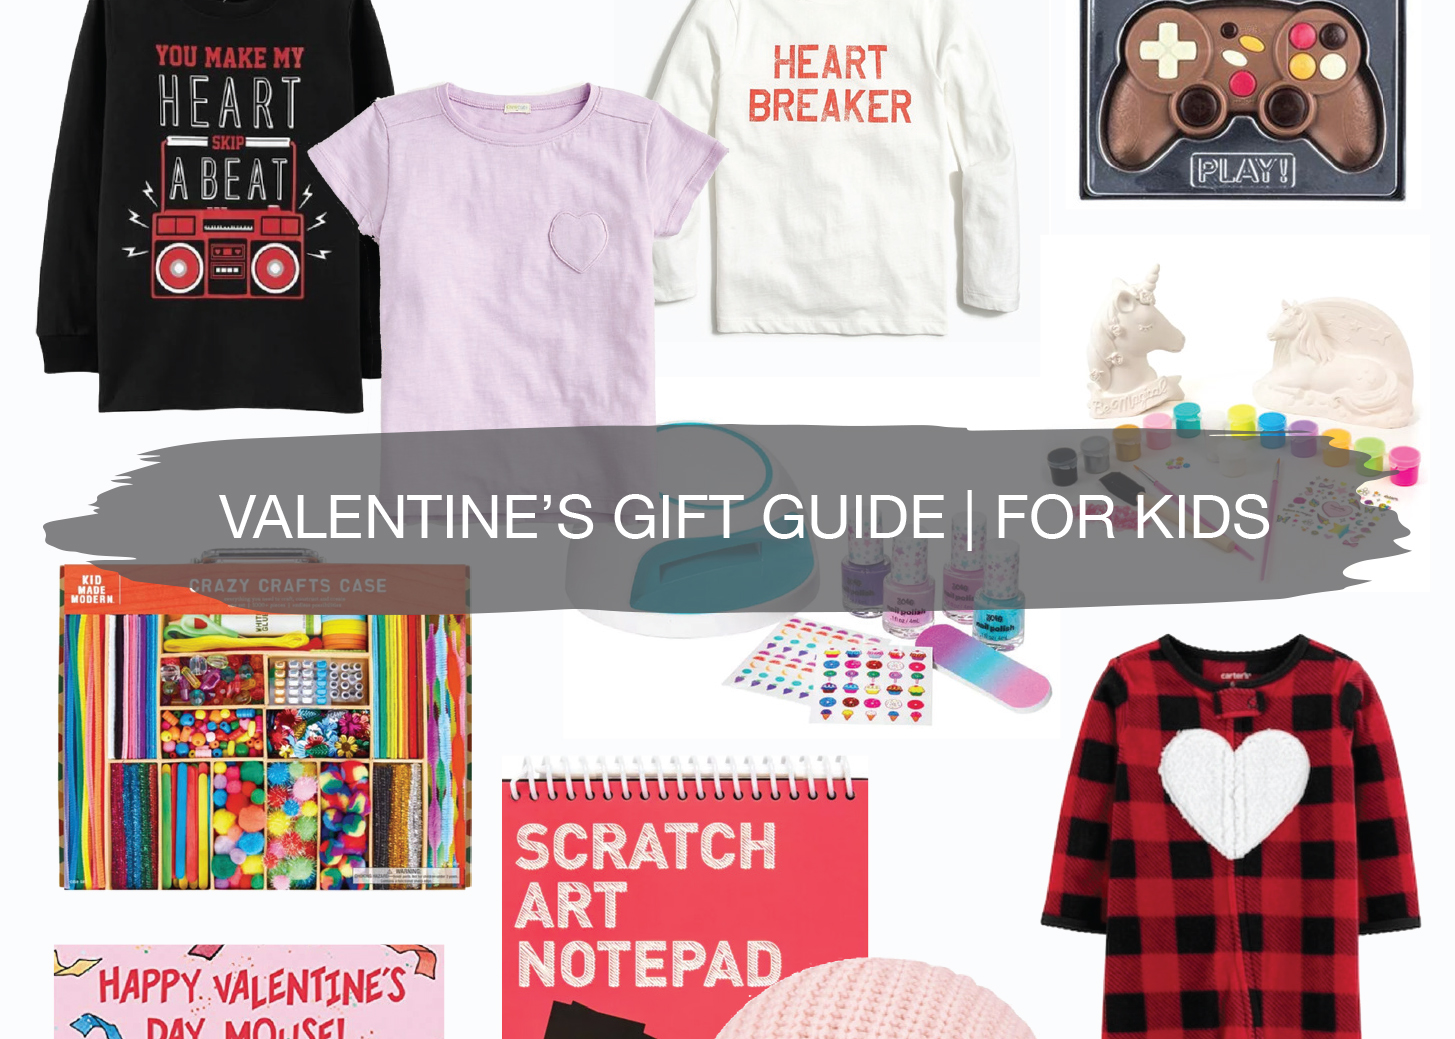 Valentine's Gift Guide | For Kids 1